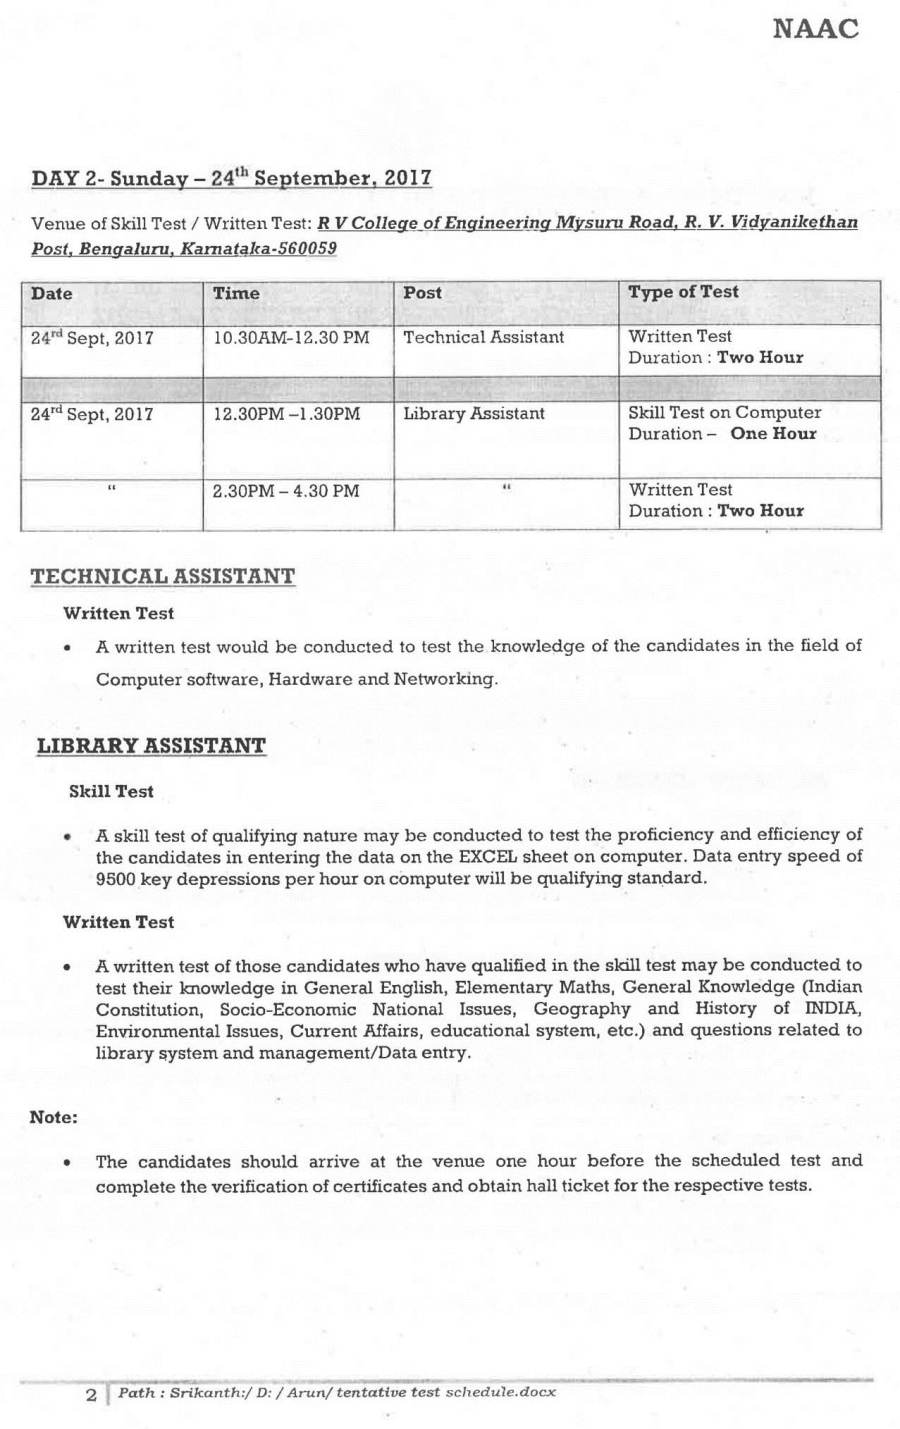 Time Schedule of Skill/Written Test for the Assistant